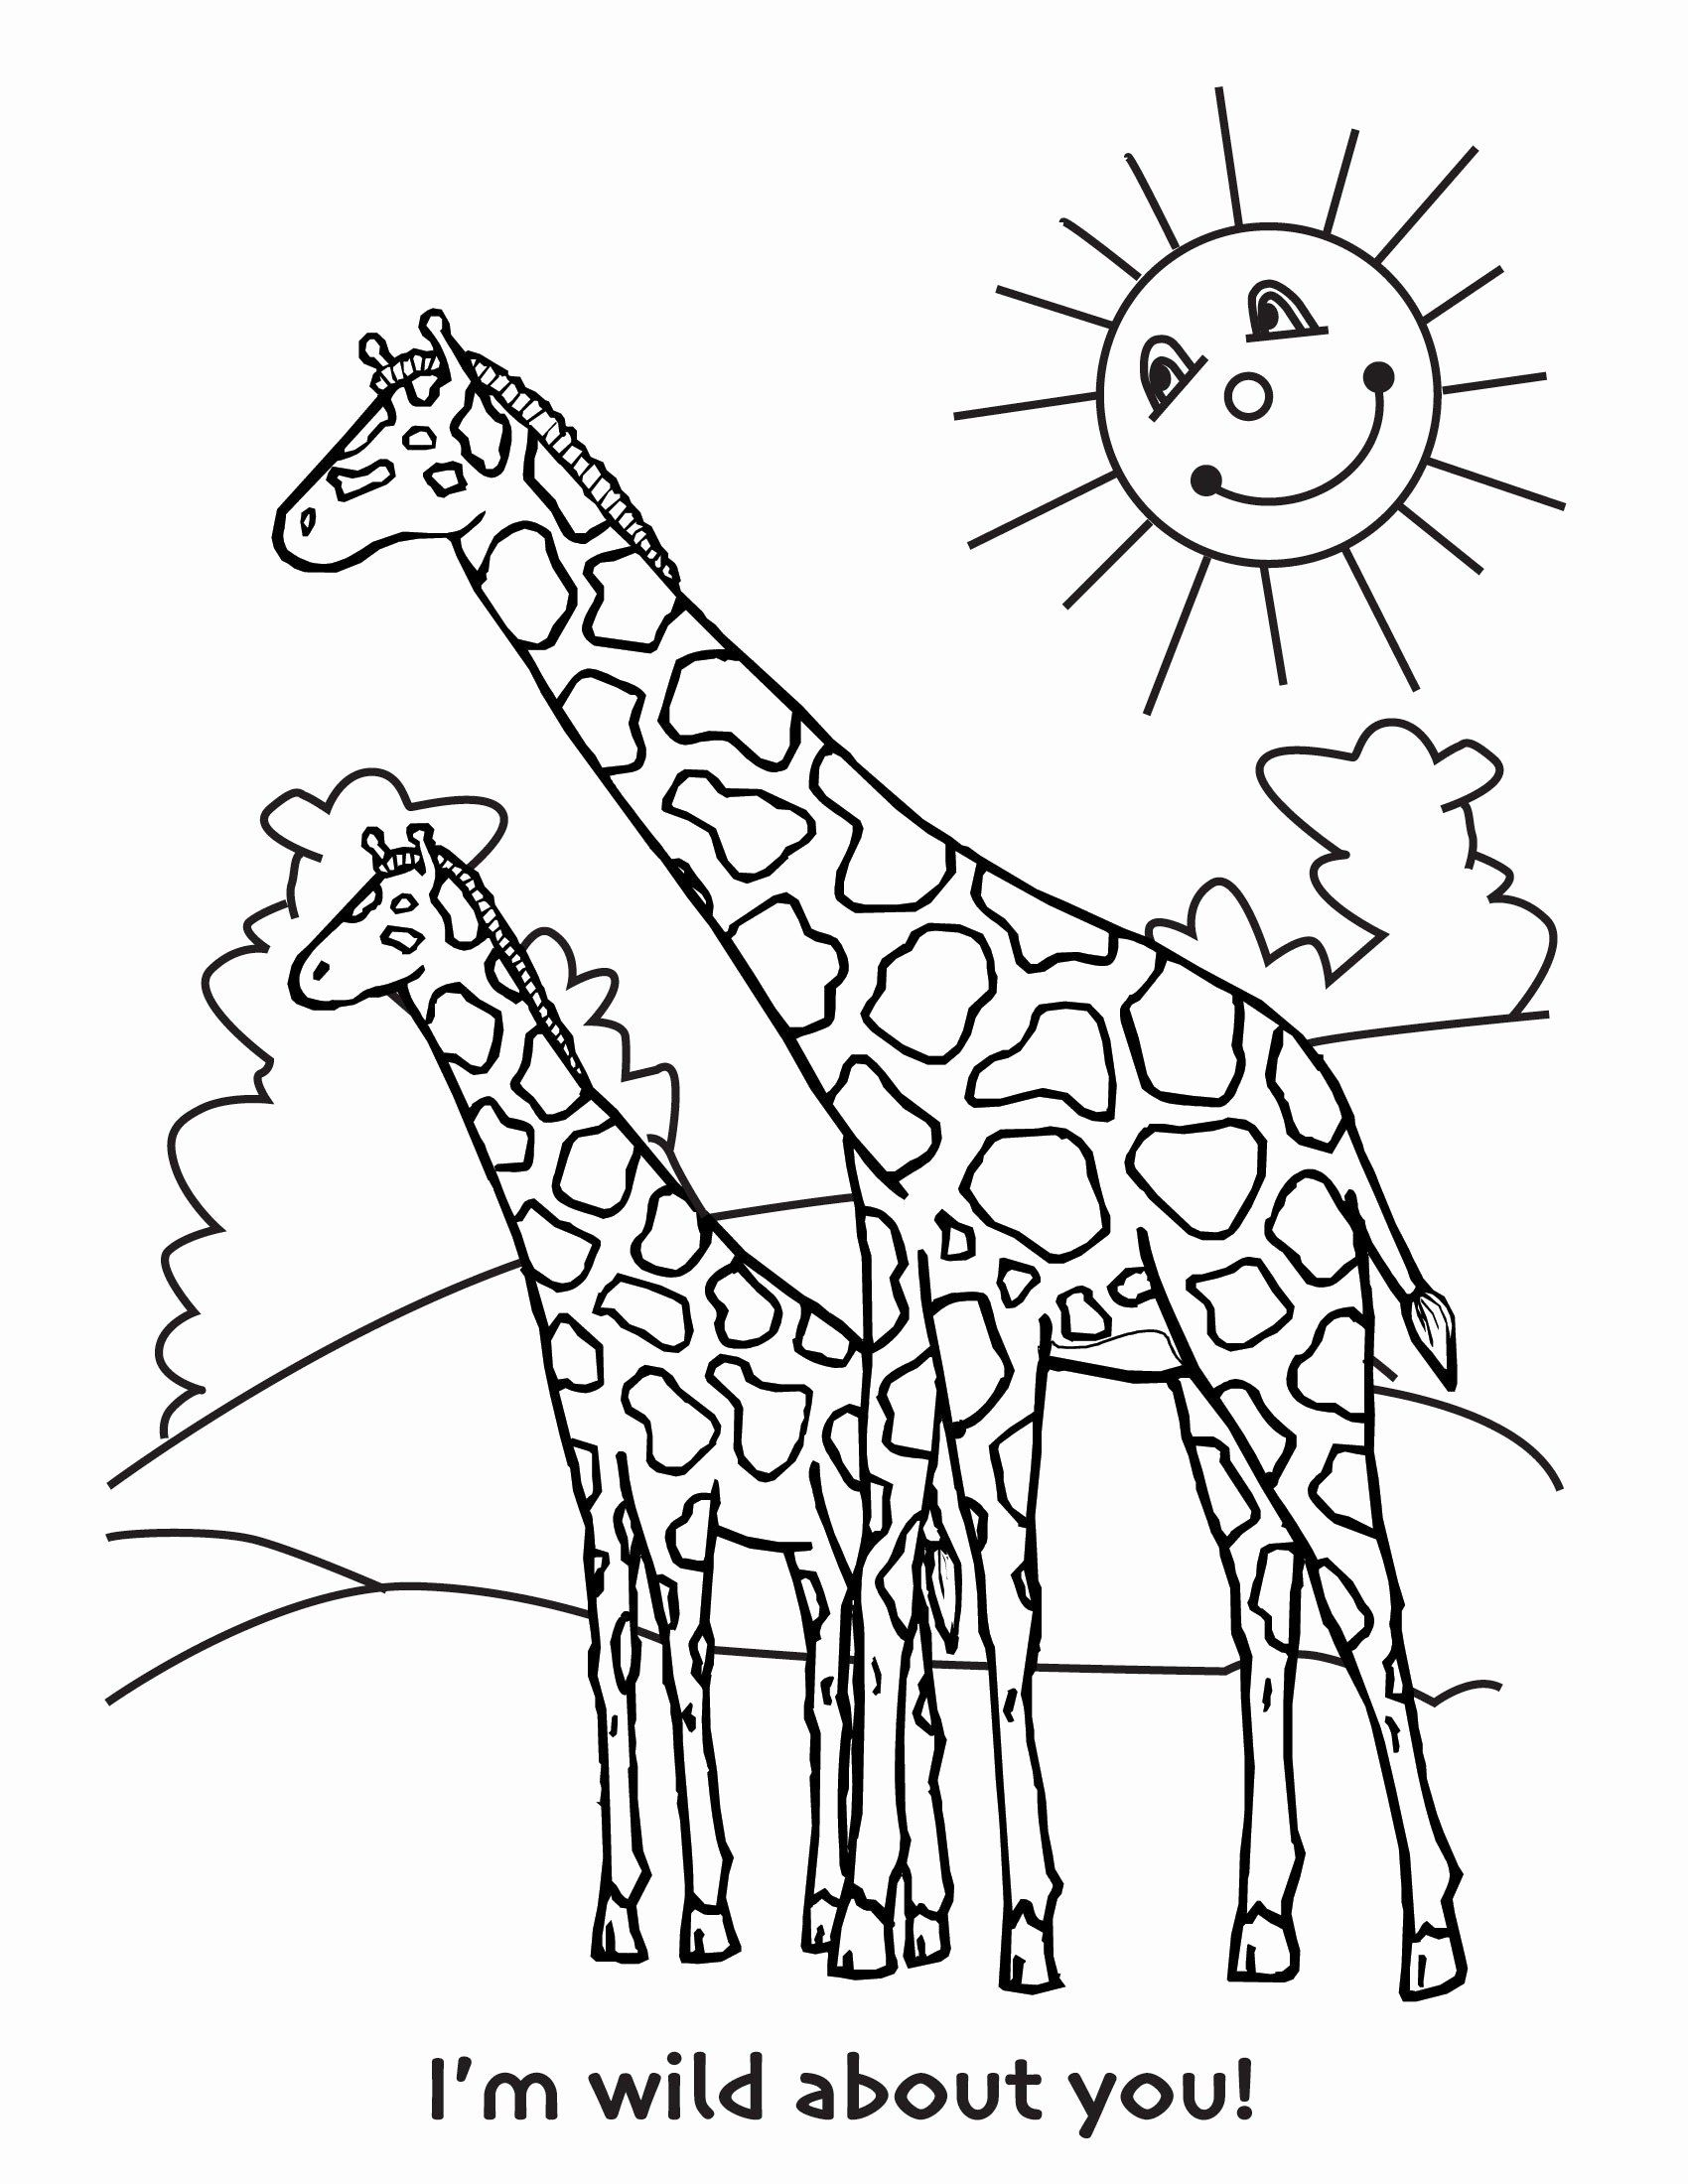 Free Coloring Pages Giraffe Elegant Best Cute Baby Giraffe Coloring Pages Nic Giraffe Coloring Pages Animal Coloring Pages Printable Christmas Coloring Pages